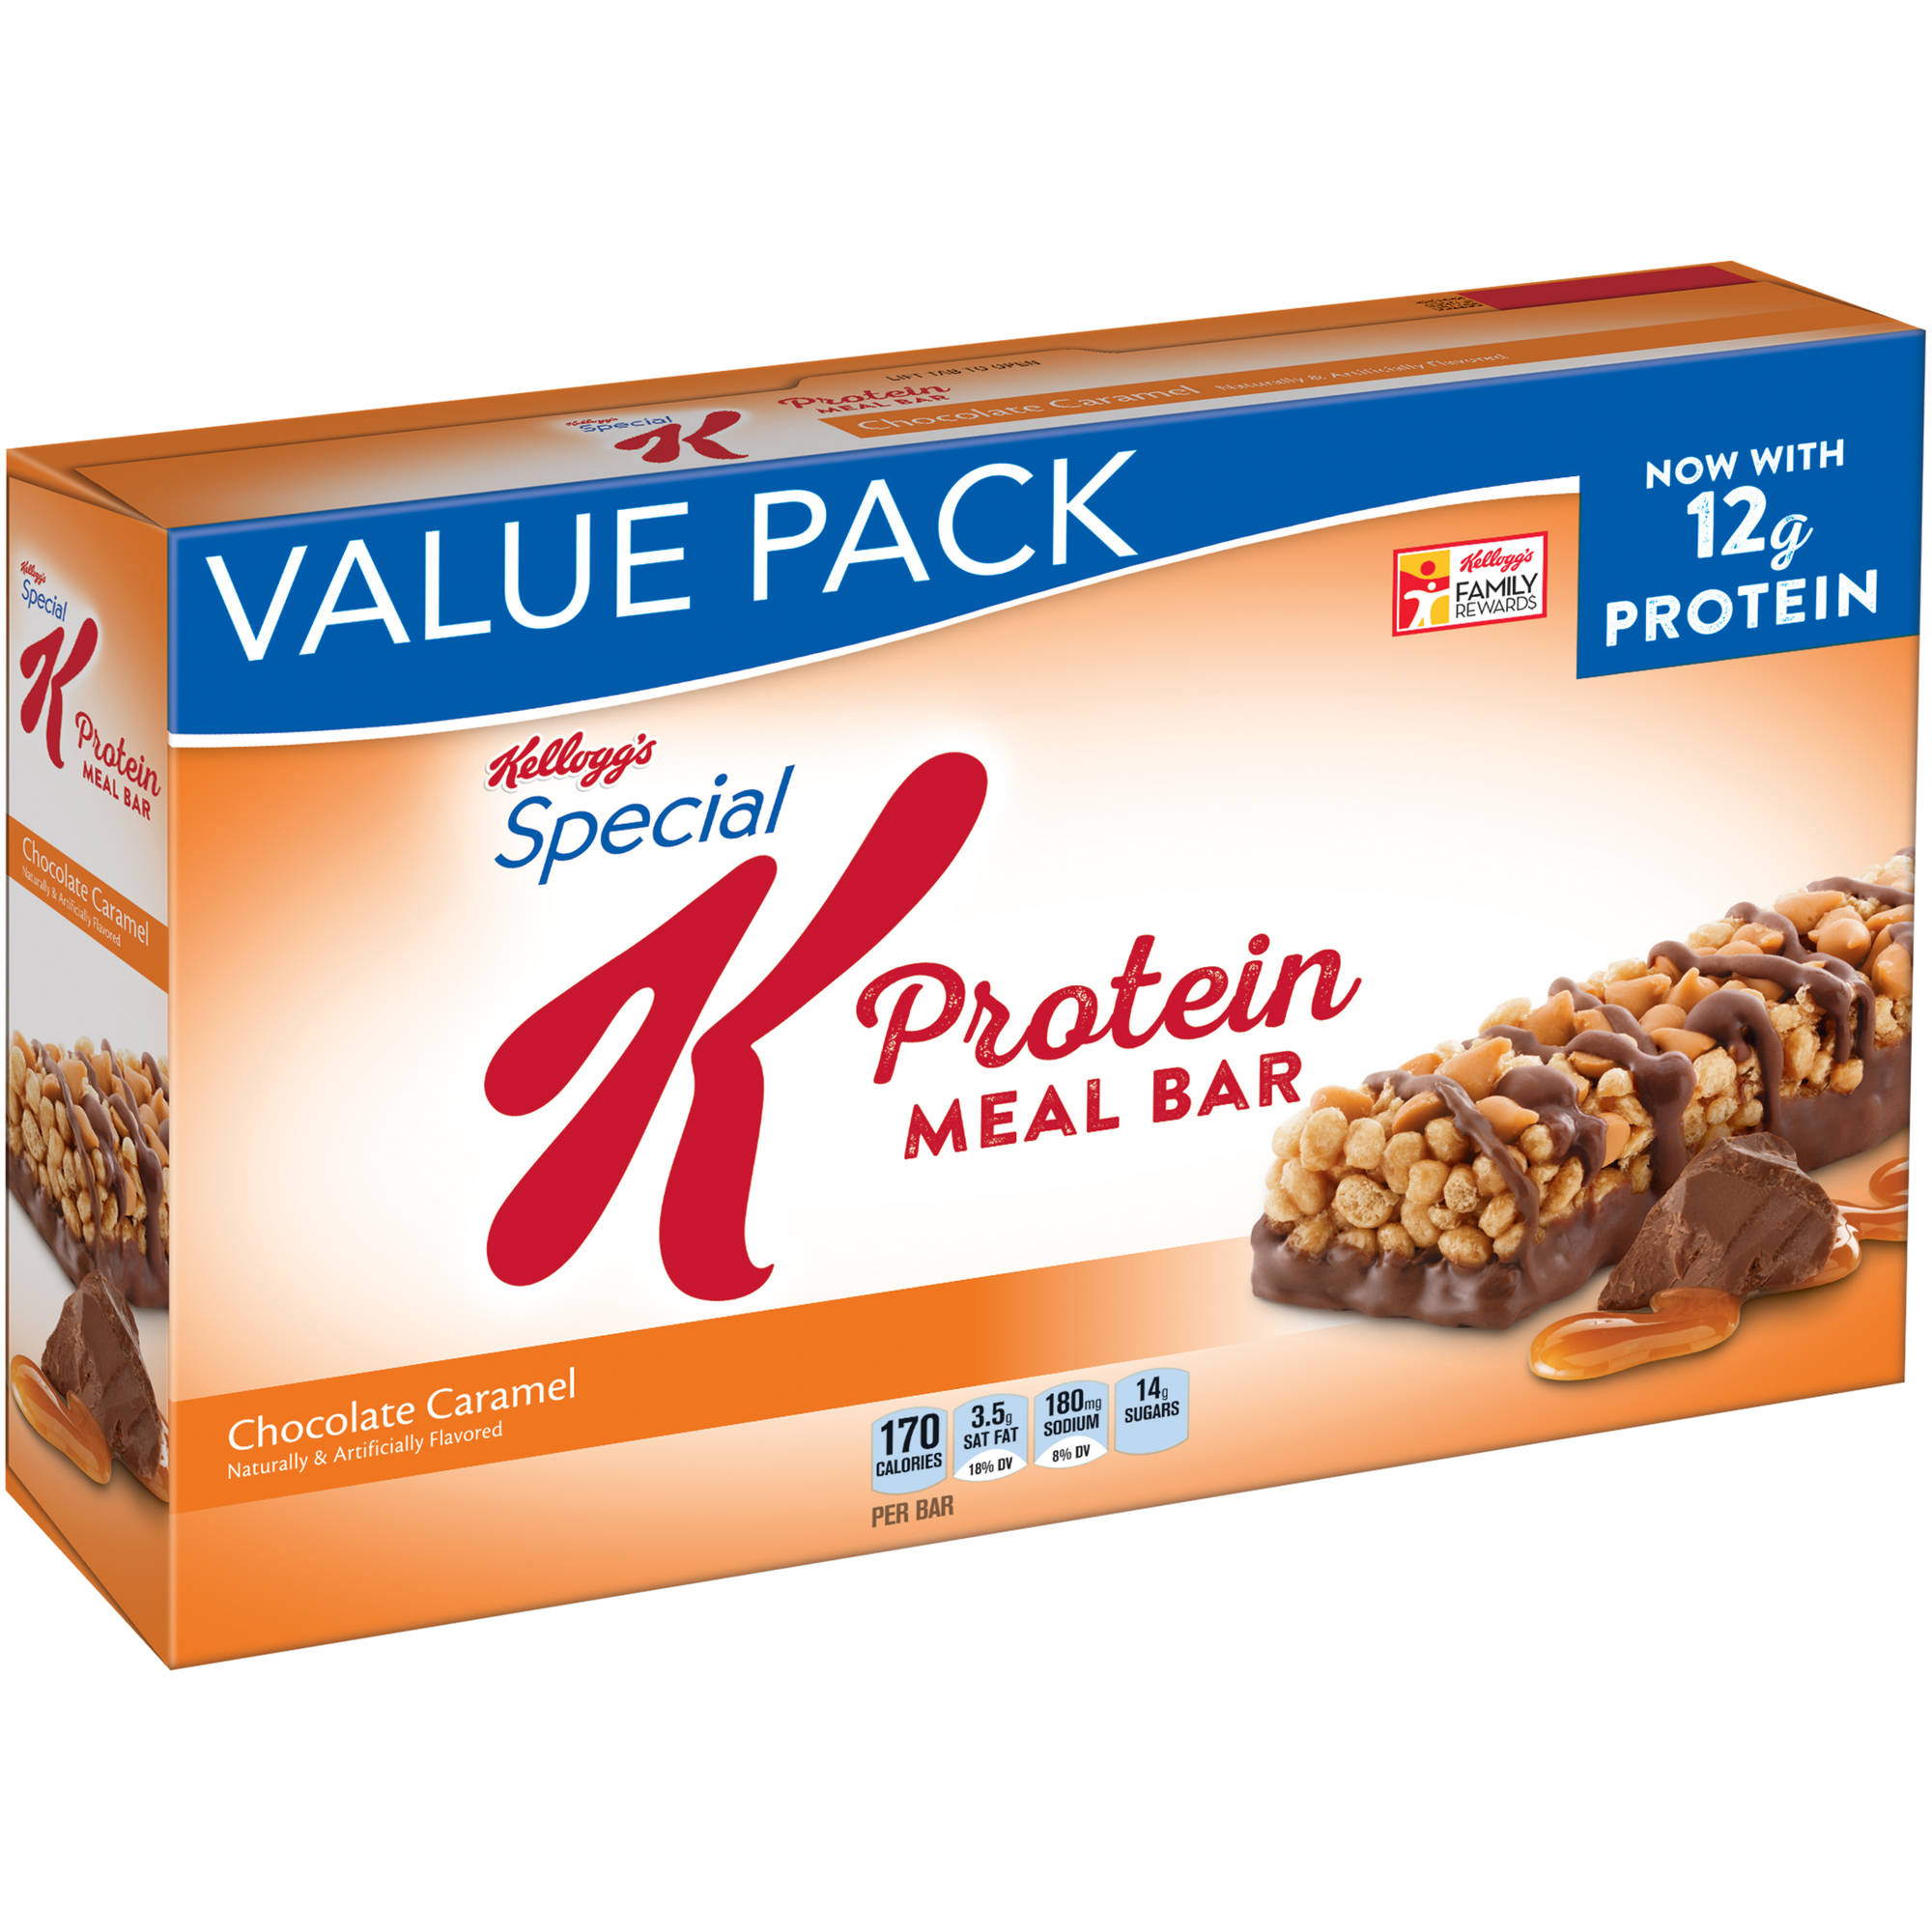 Kellogg's Chocolate Caramel Protein Meal Bars, 1.59 oz, 12 count